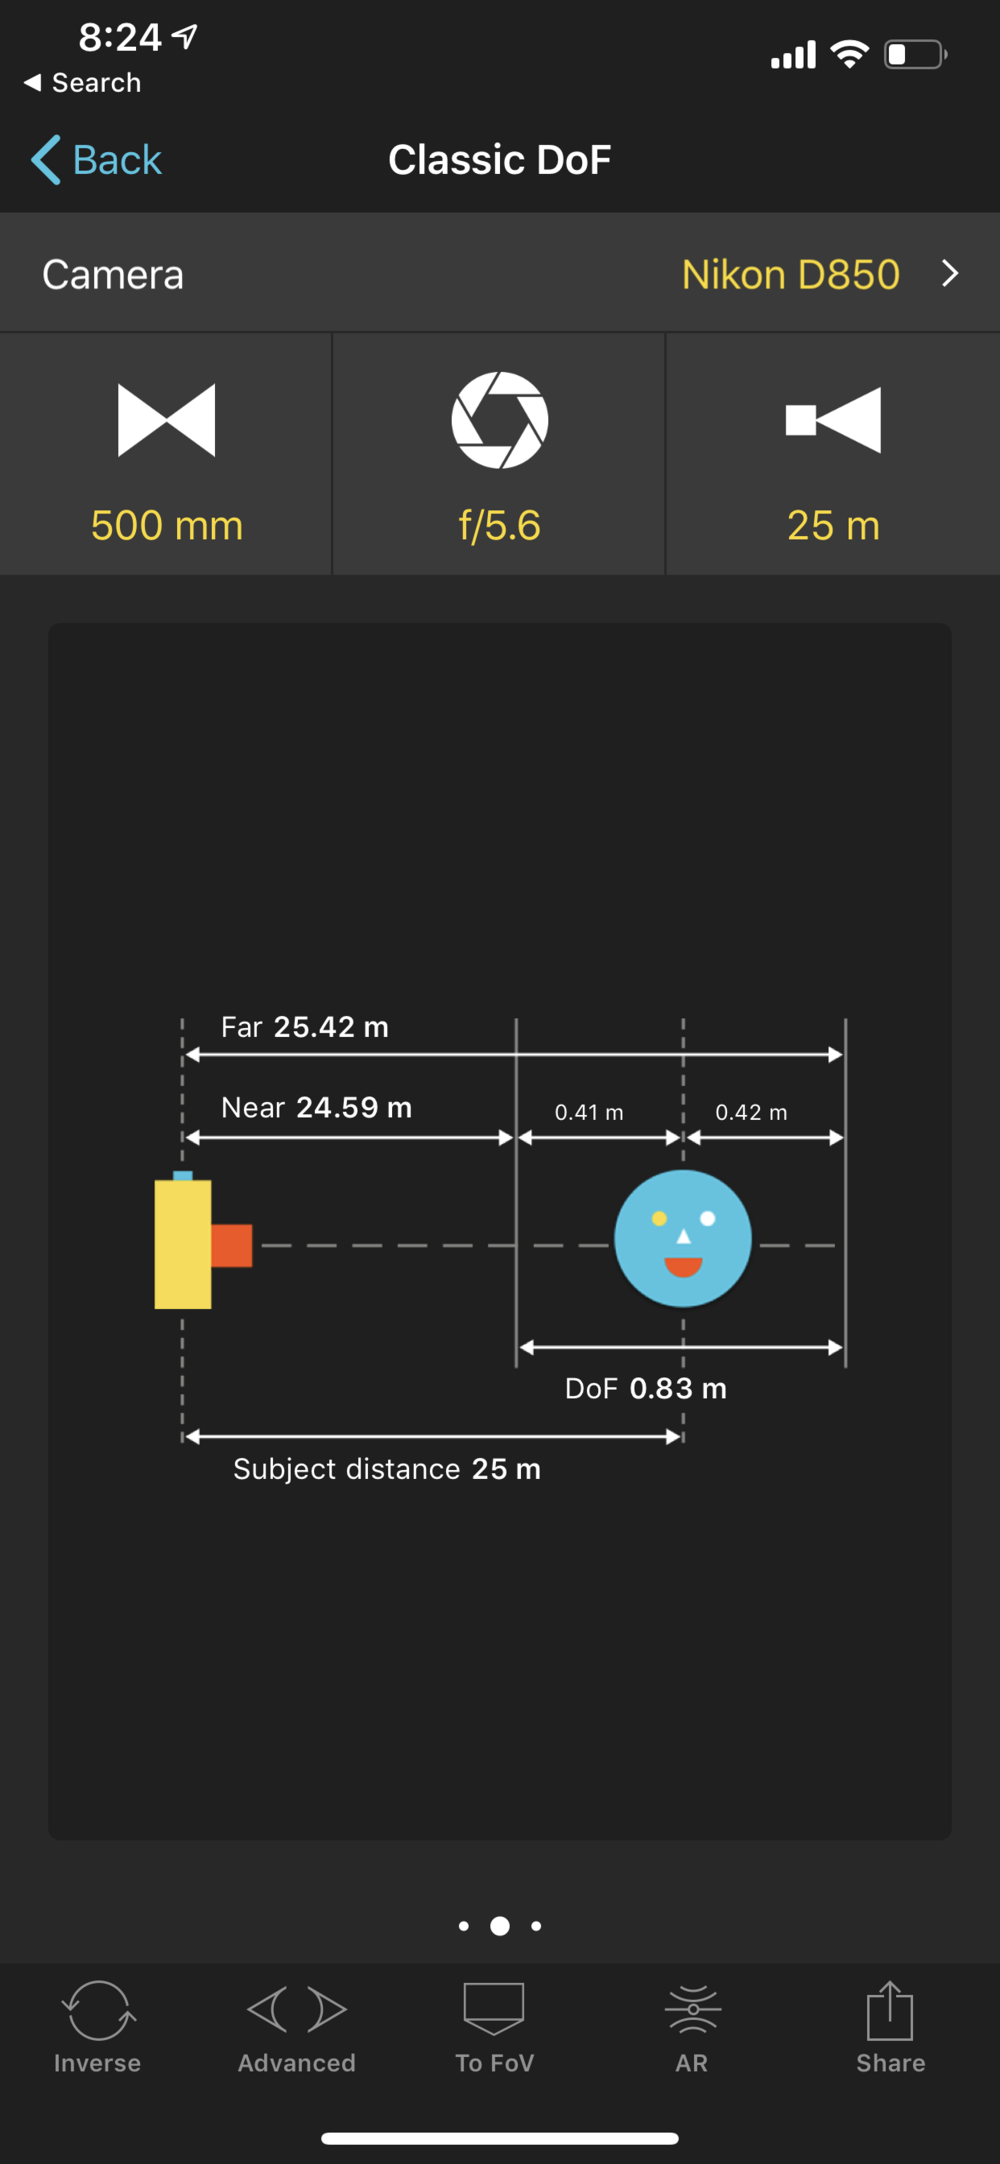 PhotoPills depth of field calculator shows both the near and far limit of depth of field based on focal length, aperture and subject distance.